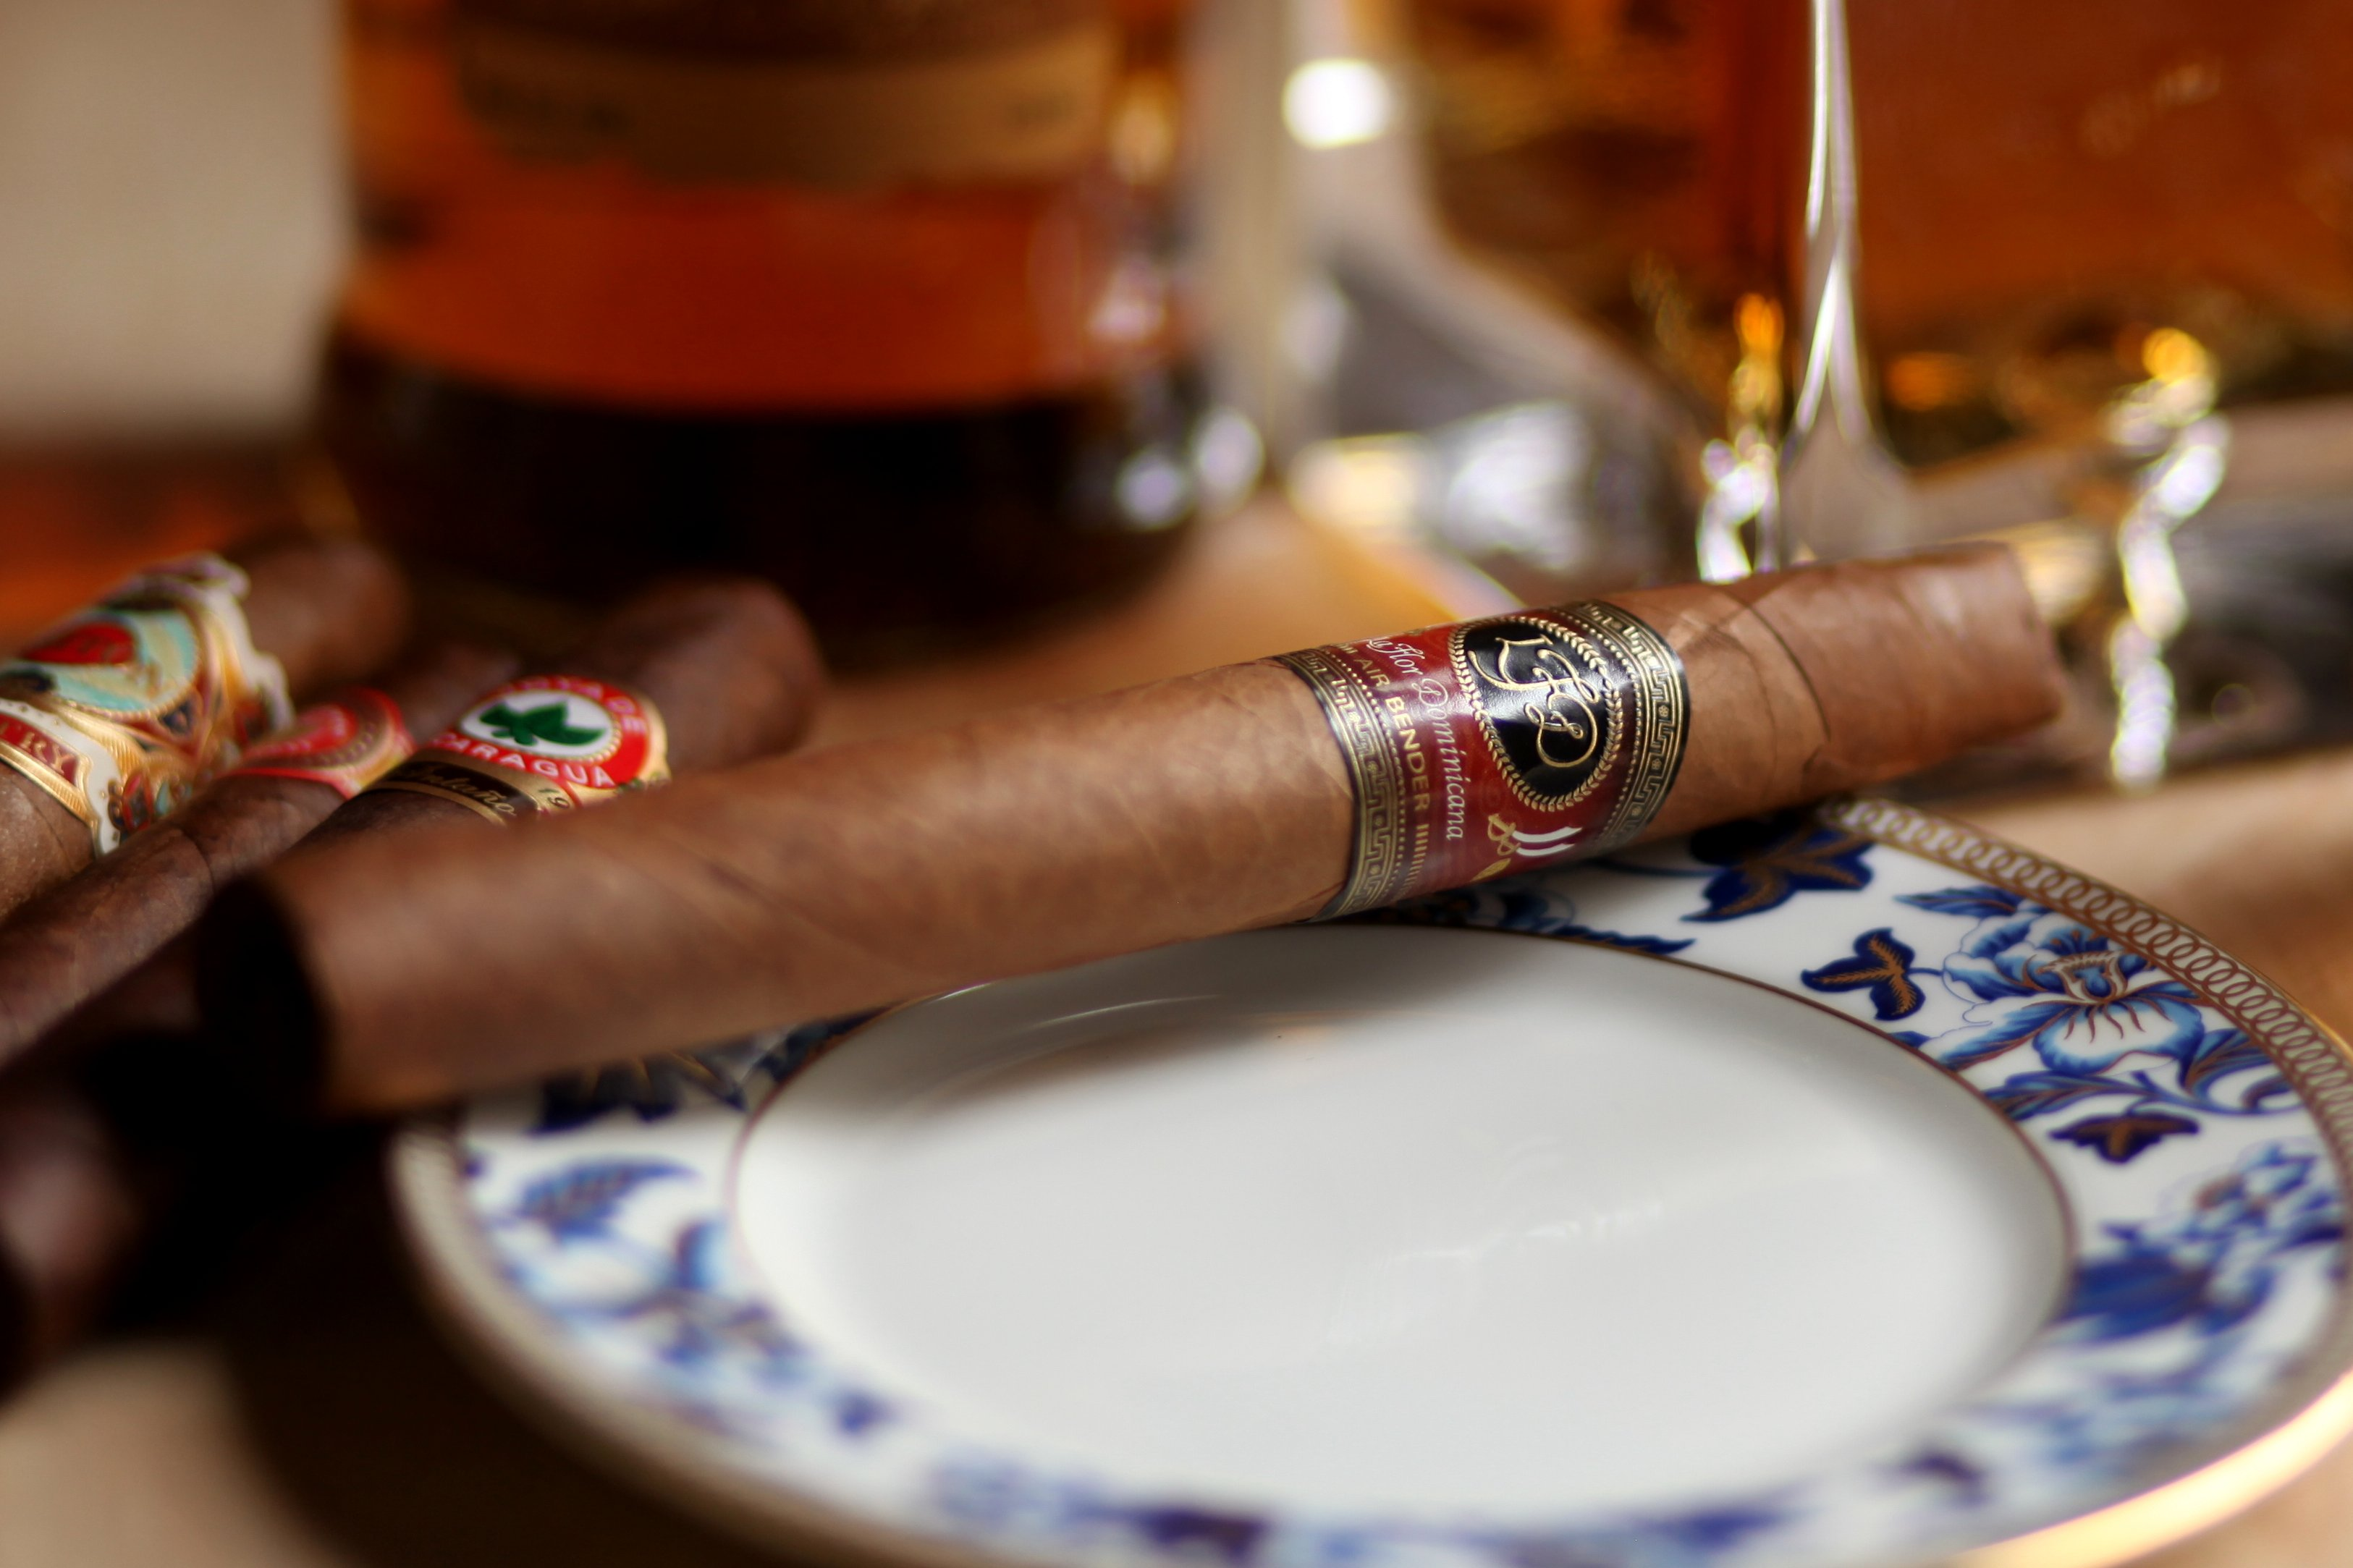 La Flor Dominicana Air Bender Chisel Review